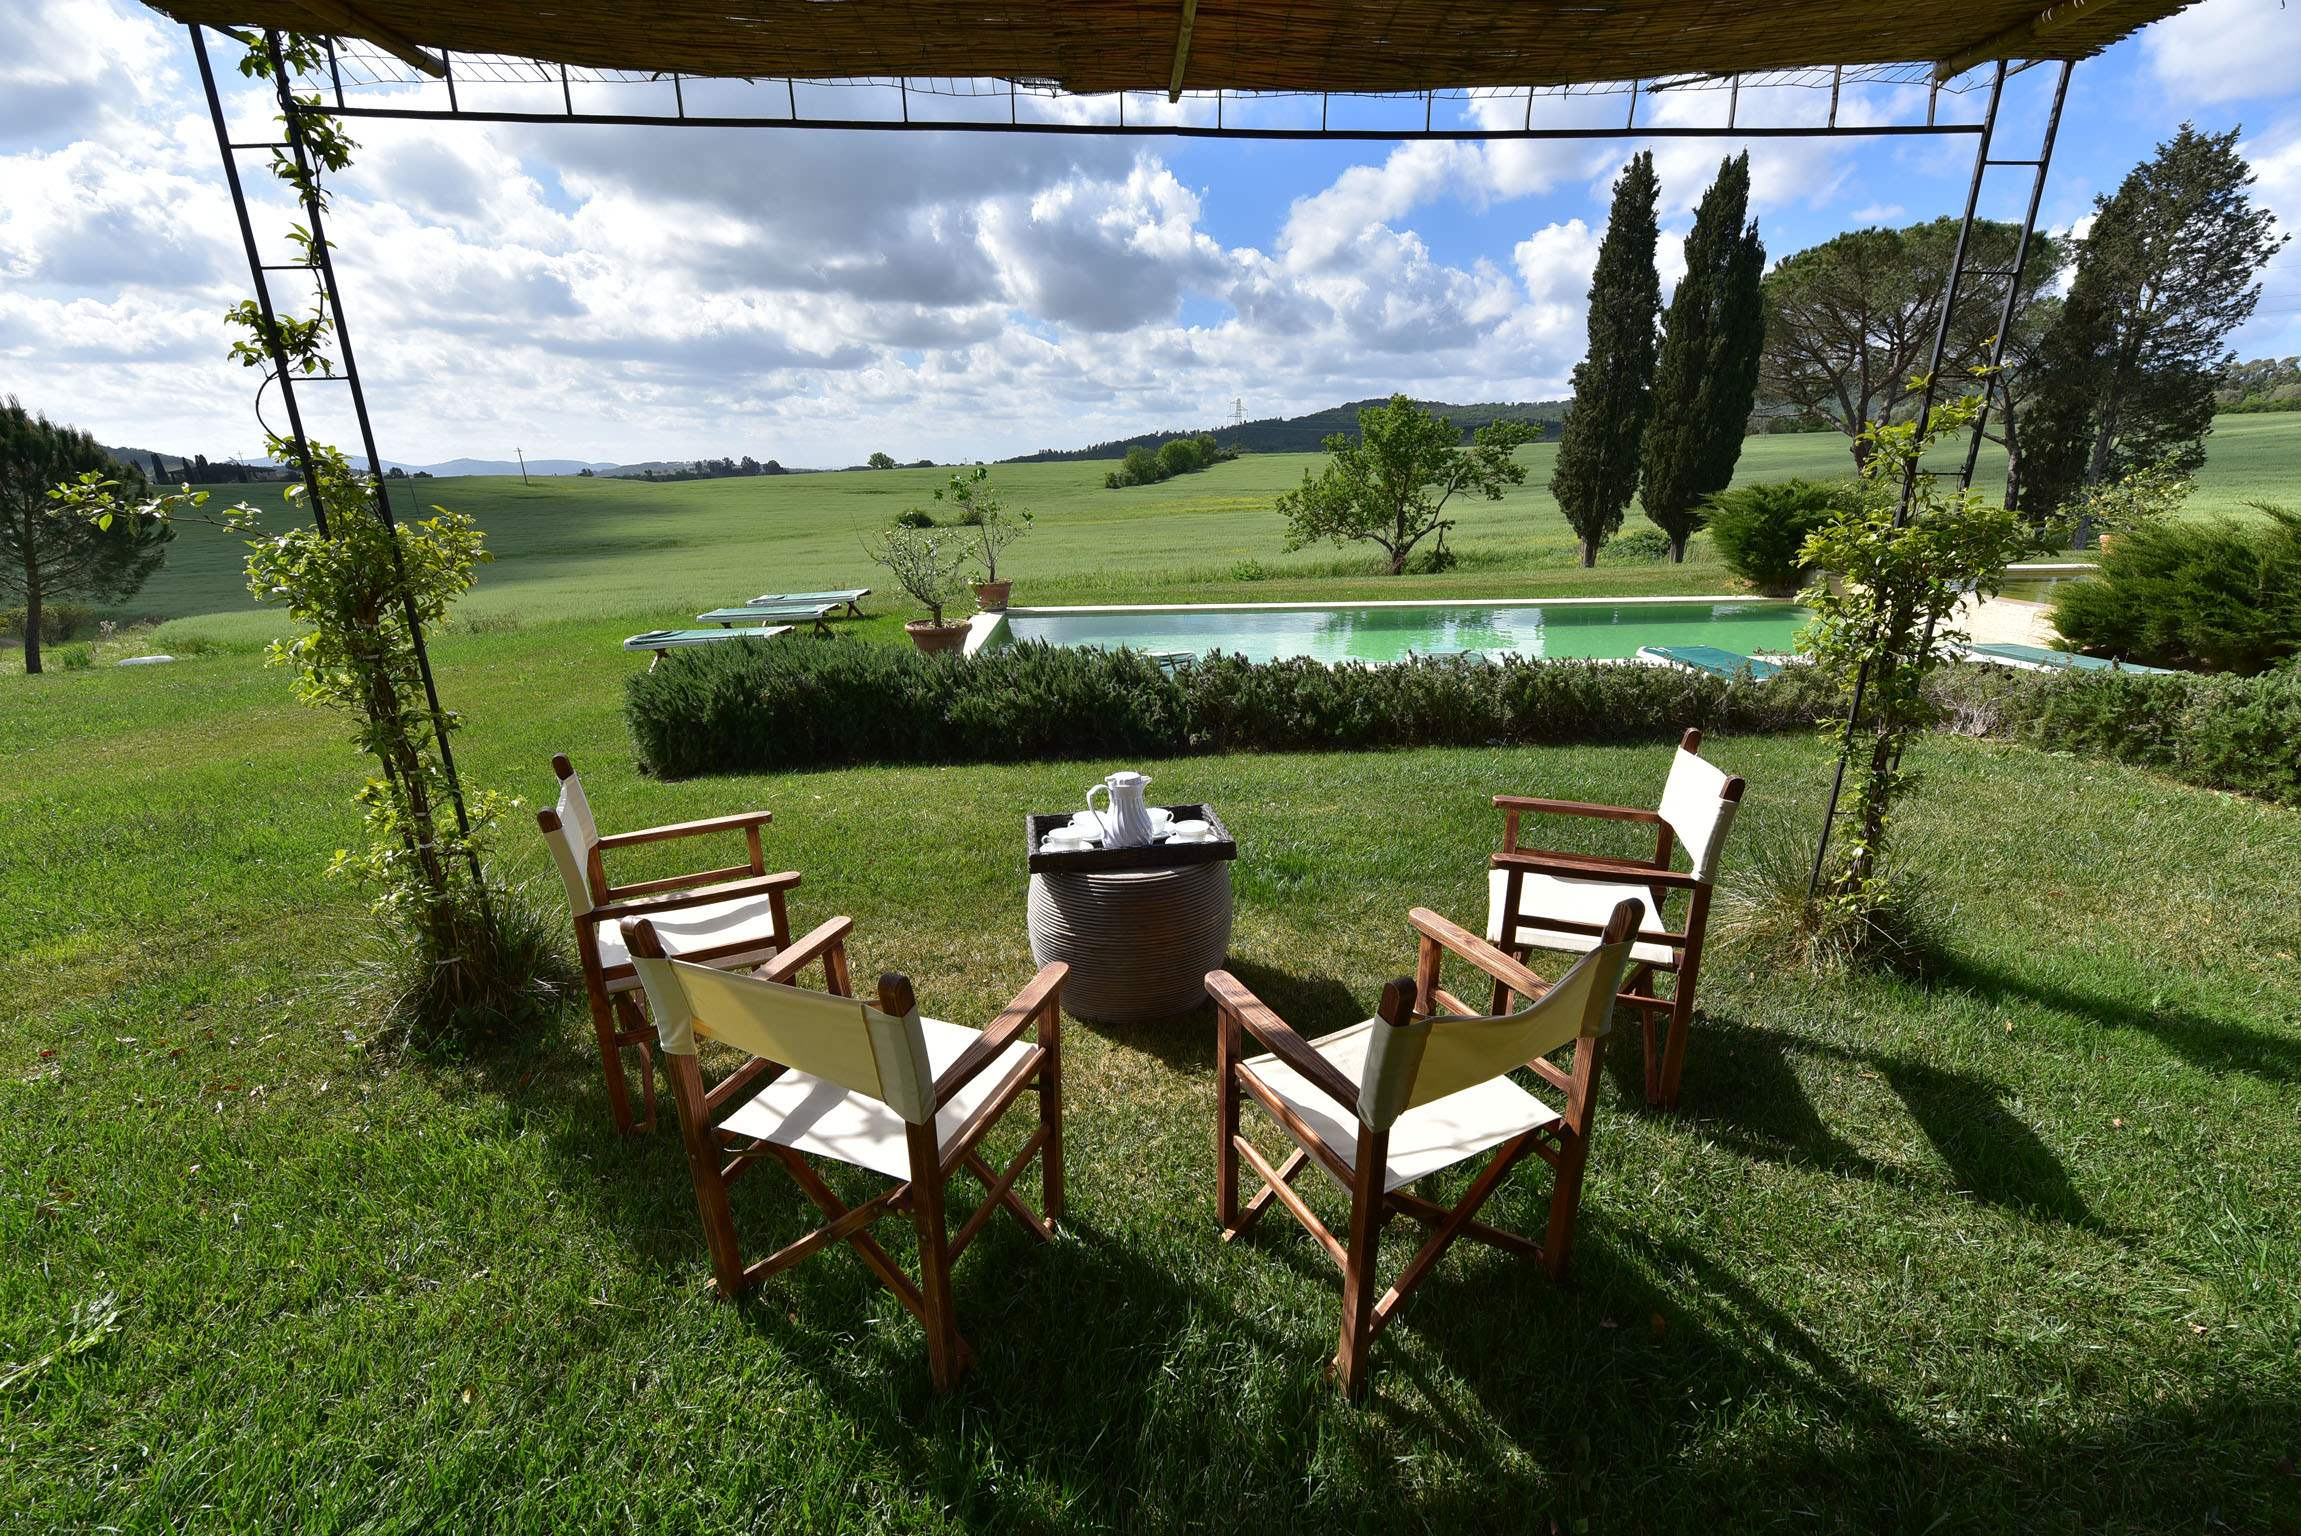 Villa Maremma 2, 9 bedroom villa in South Tuscany - Maremma, Tuscany Photo #3